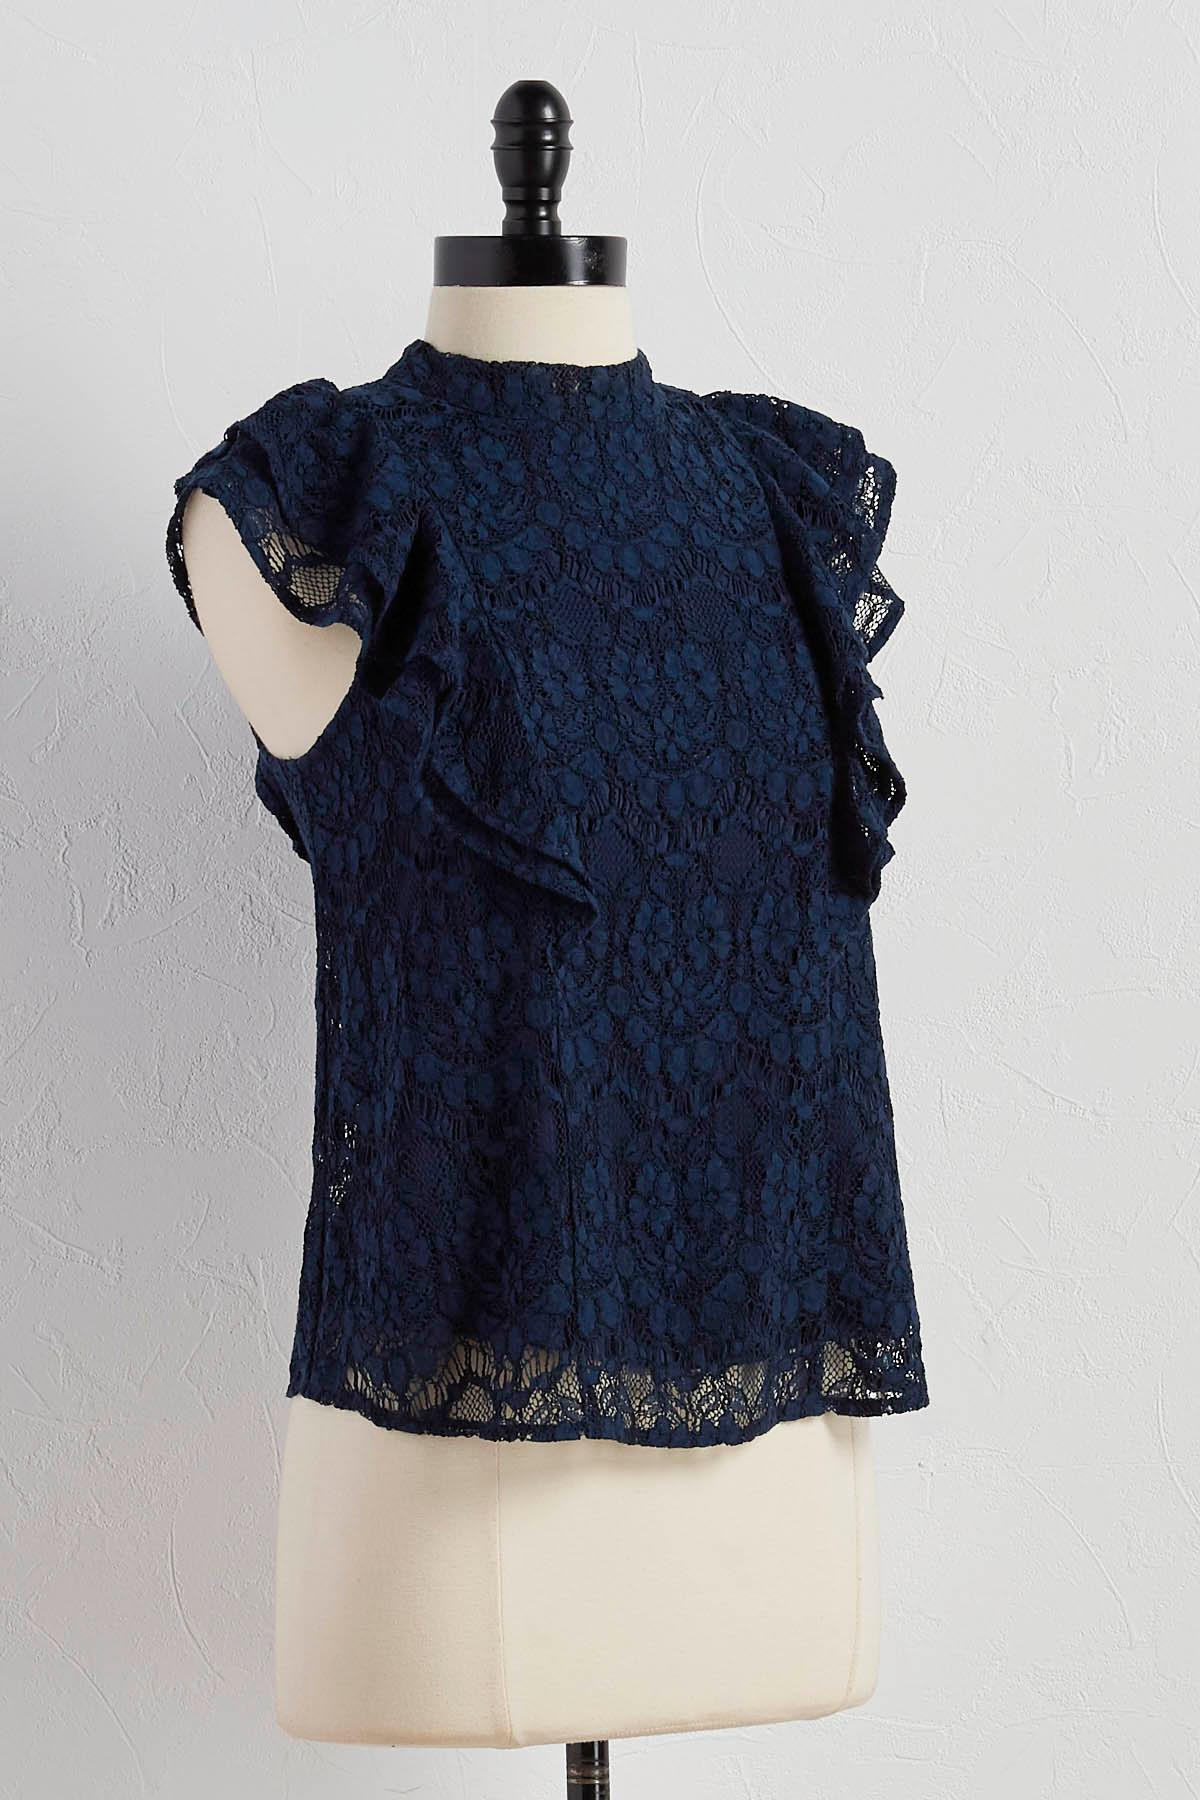 Ruffled Lace Mock Neck Top